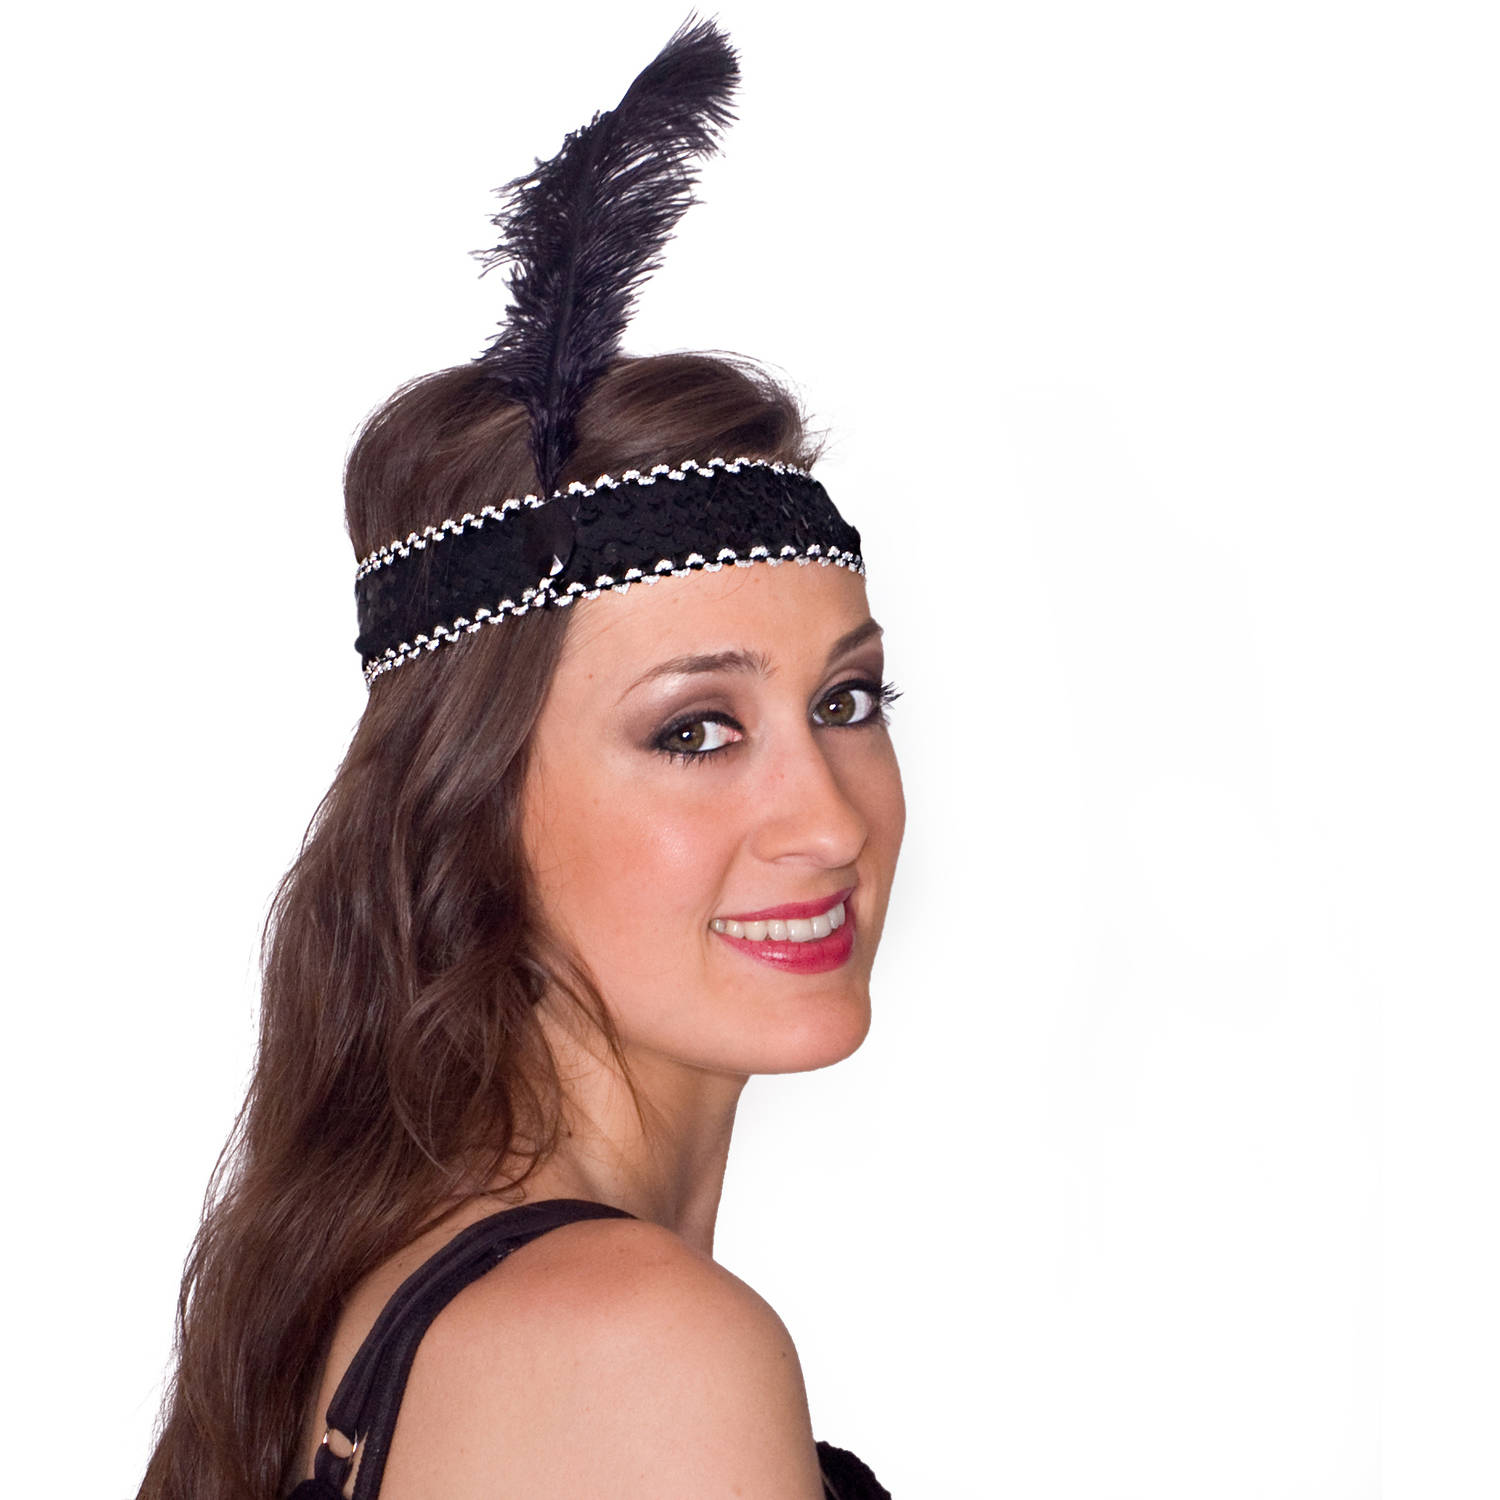 Sunnywood Silver and Black Flapper Headpiece